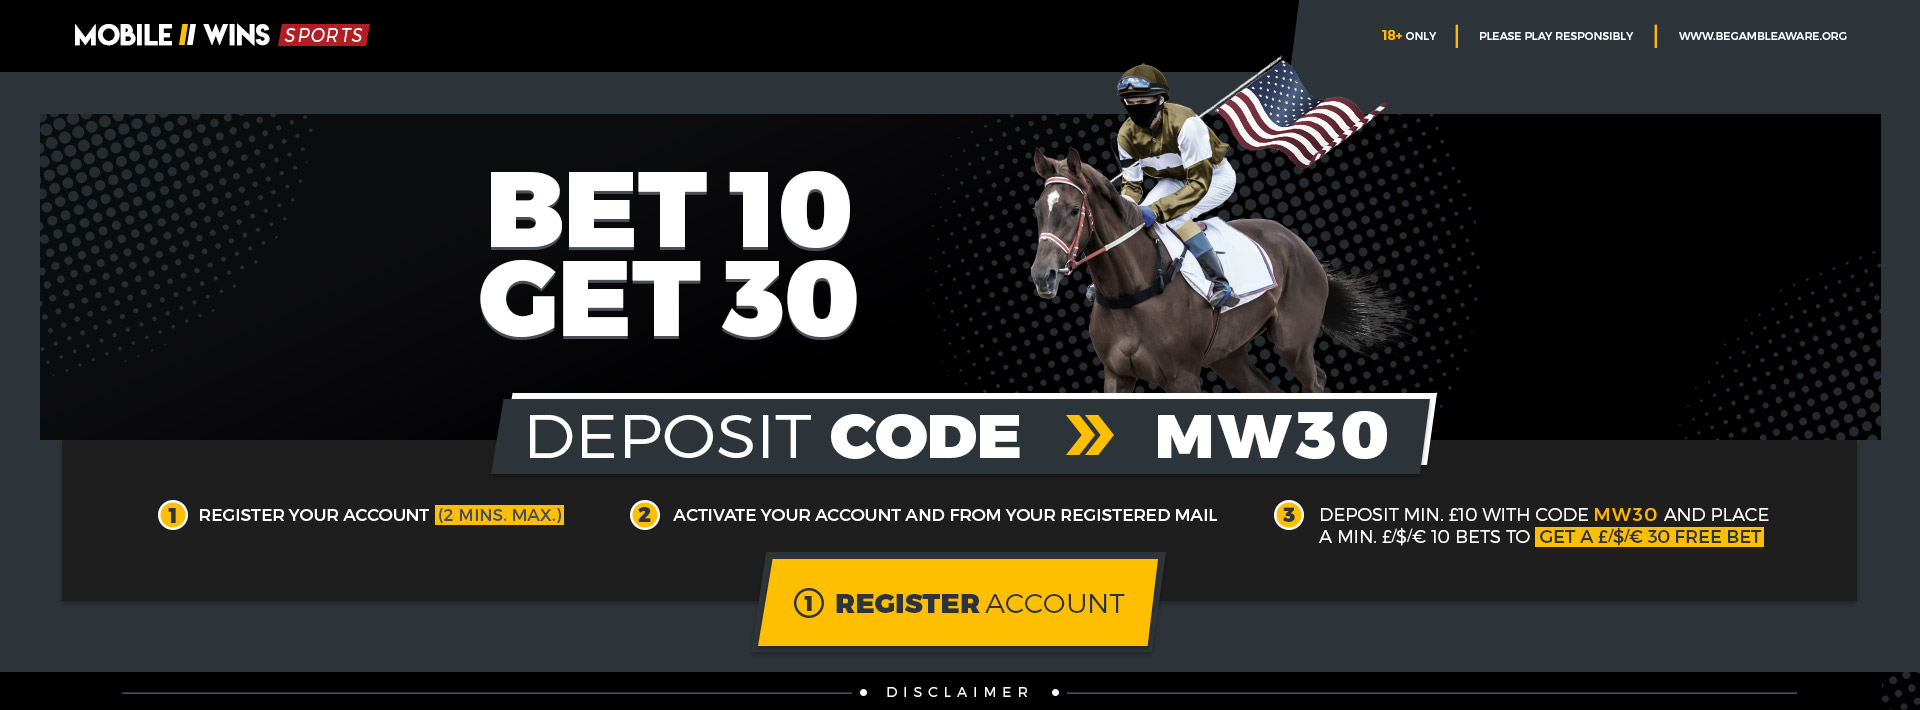 Bet 10 get 30 sports mcgregor sports betting